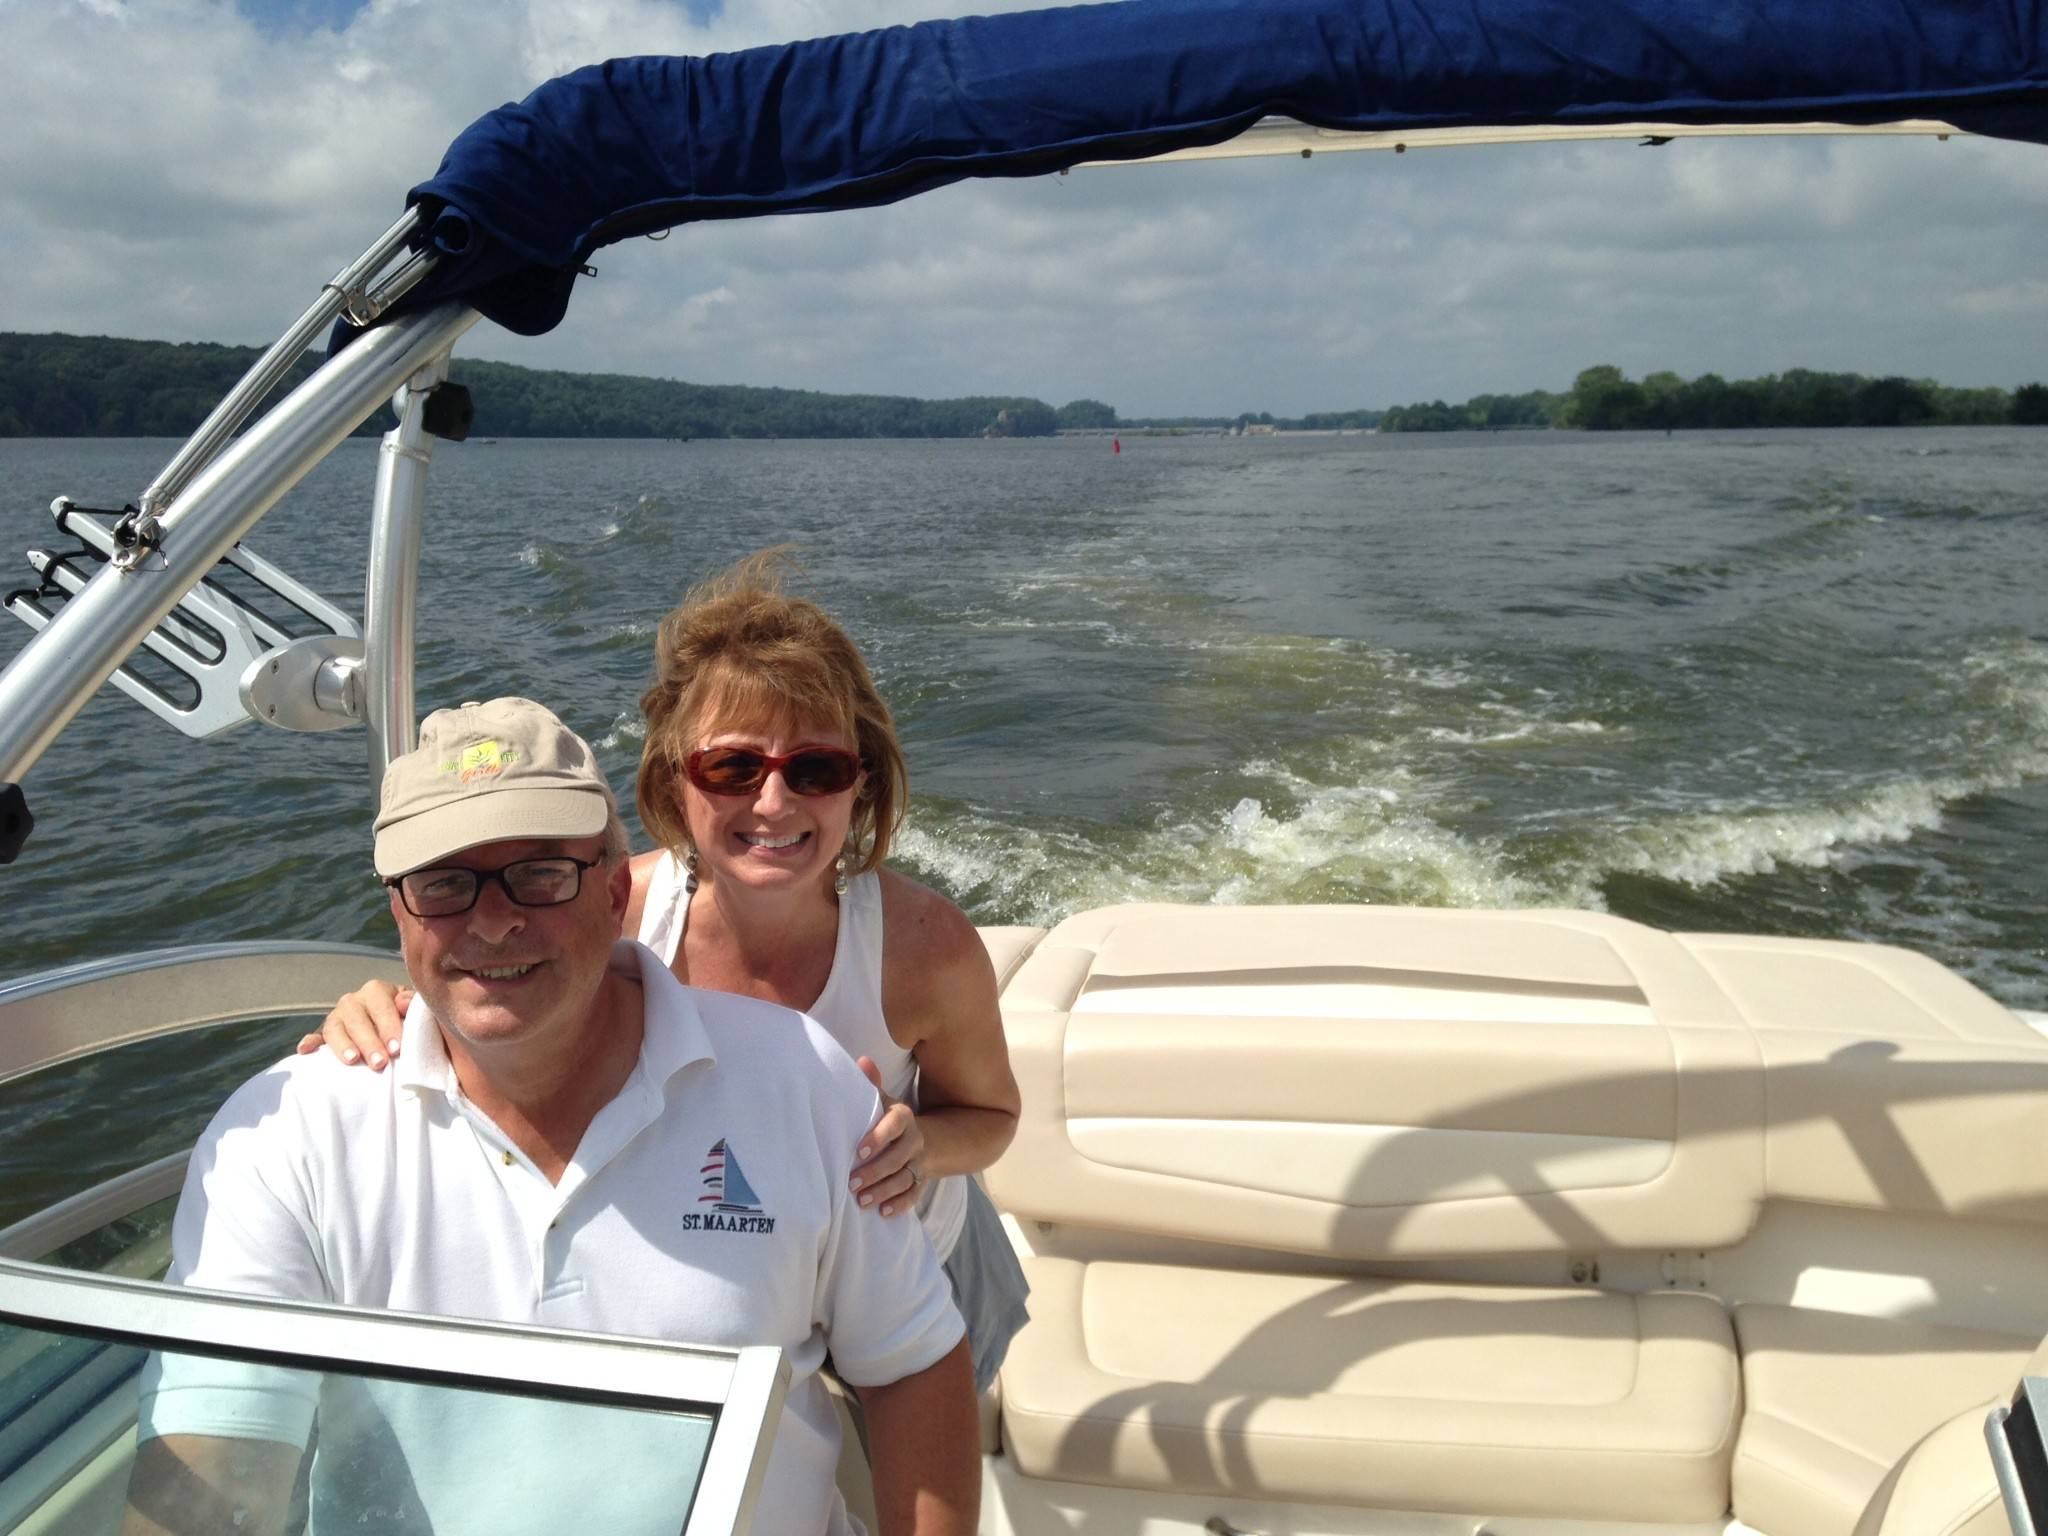 Ann and Harry Hultgren, who purchased a second home at Heritage Harbor Ottawa, joined an annual-fee boat club there that allows them to take out a watercraft whenever they wish.